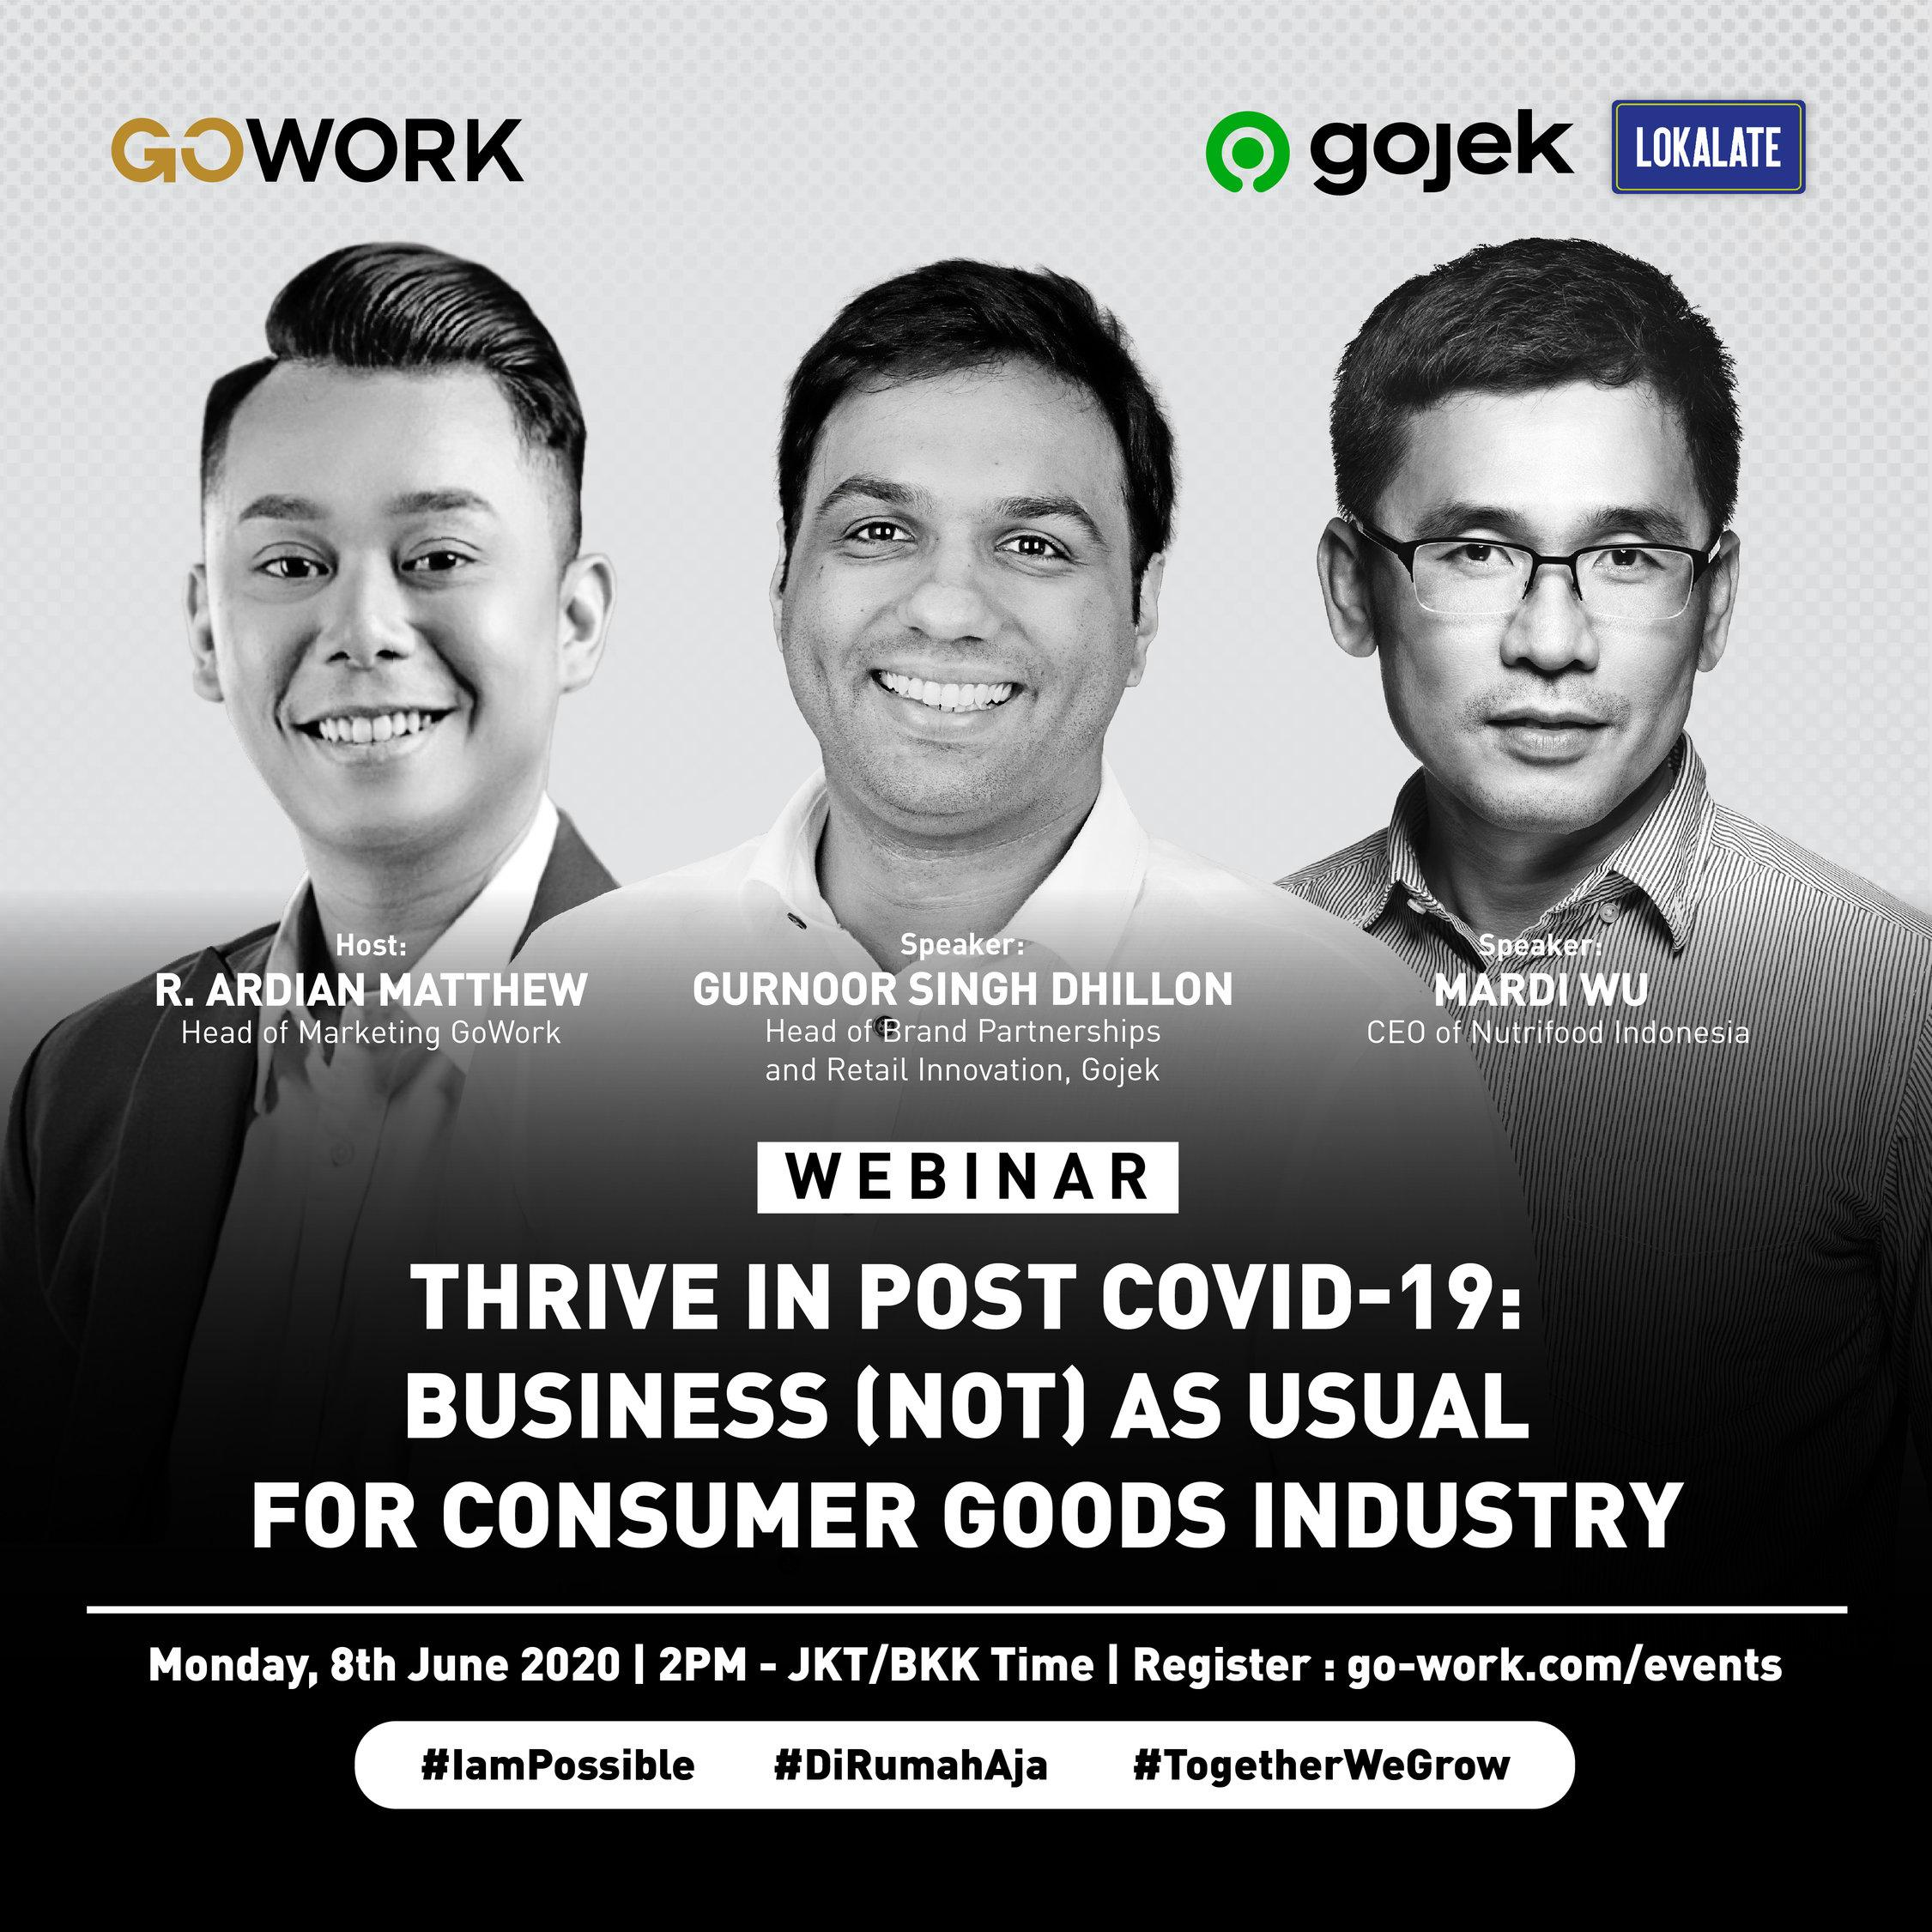 Thrive in Post COVID-19: Business (Not) as Usual for Consumer Good Industry